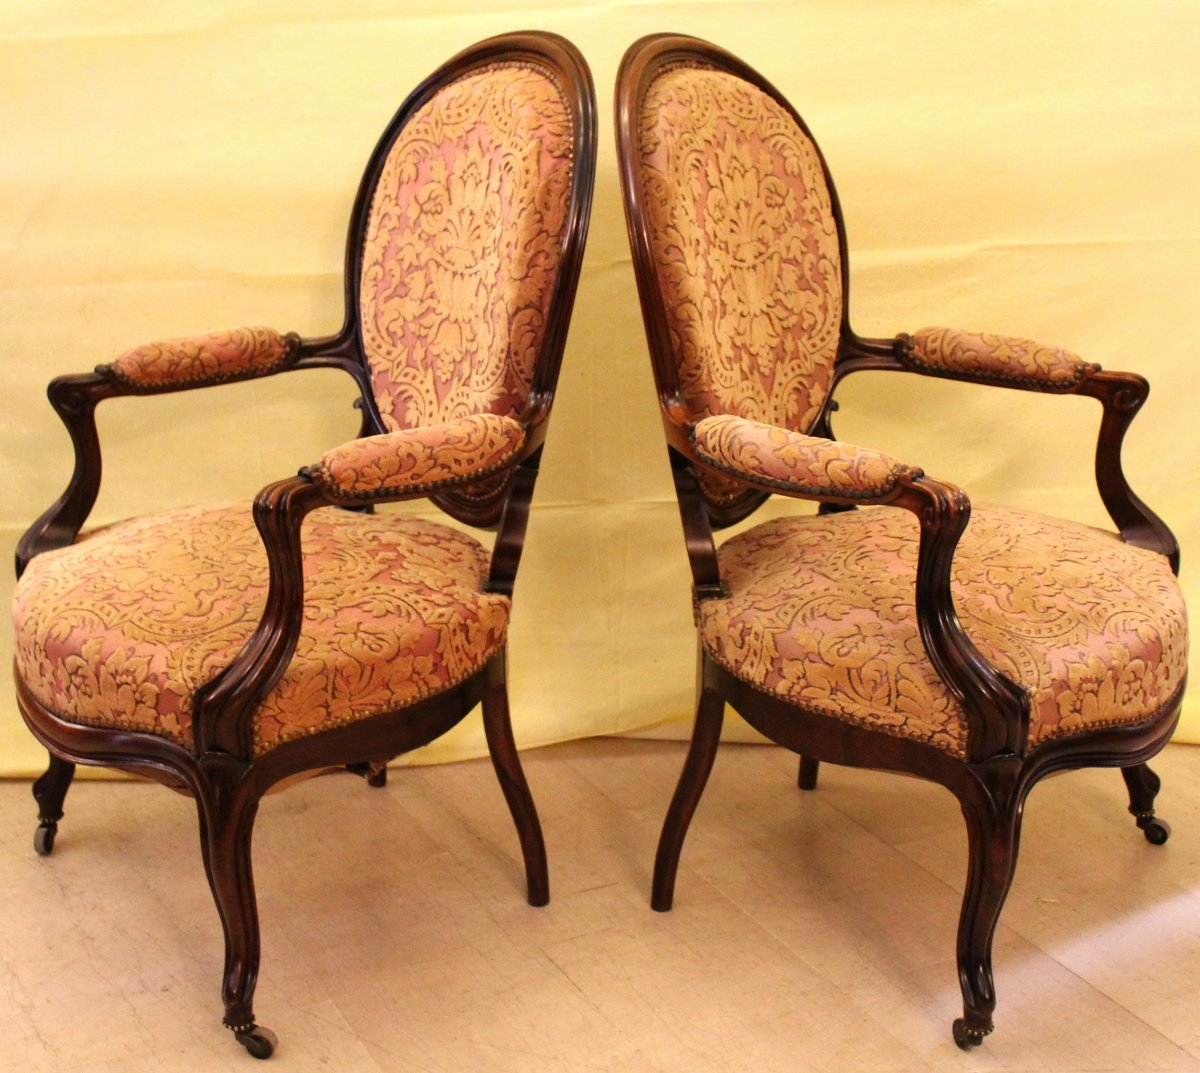 Antique Pair Of Louis Philippe Armchairs In Rosewood - 19th Century-photo-4